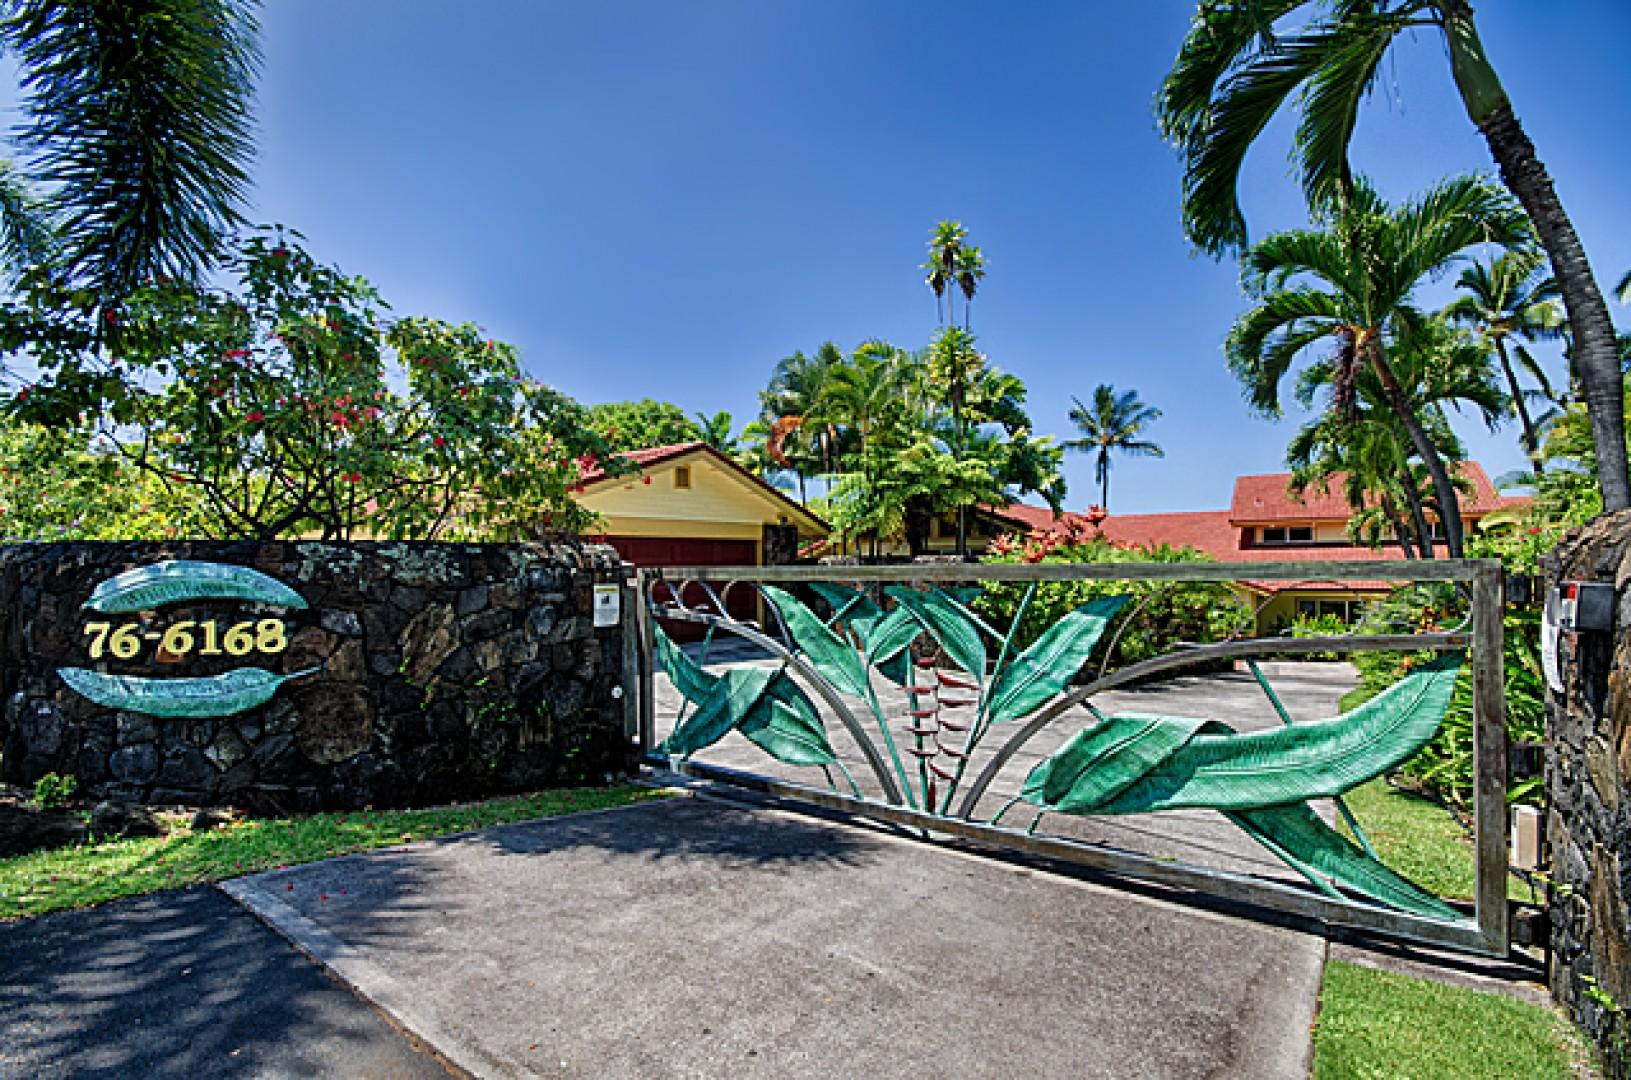 Secure gated entry to Hale Pua